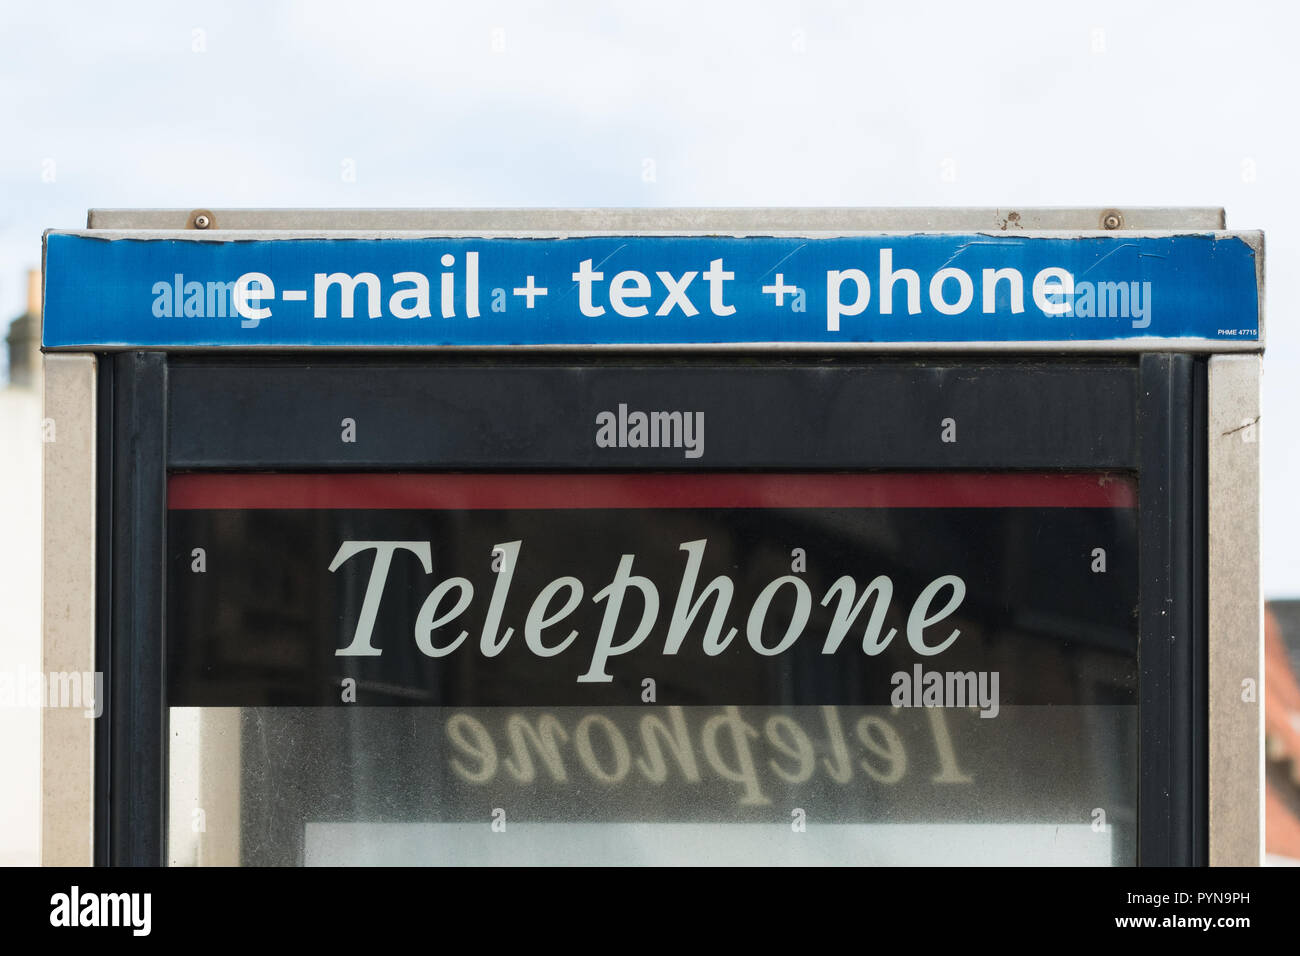 e-mail text phone sign above uk telephone box - Stock Image